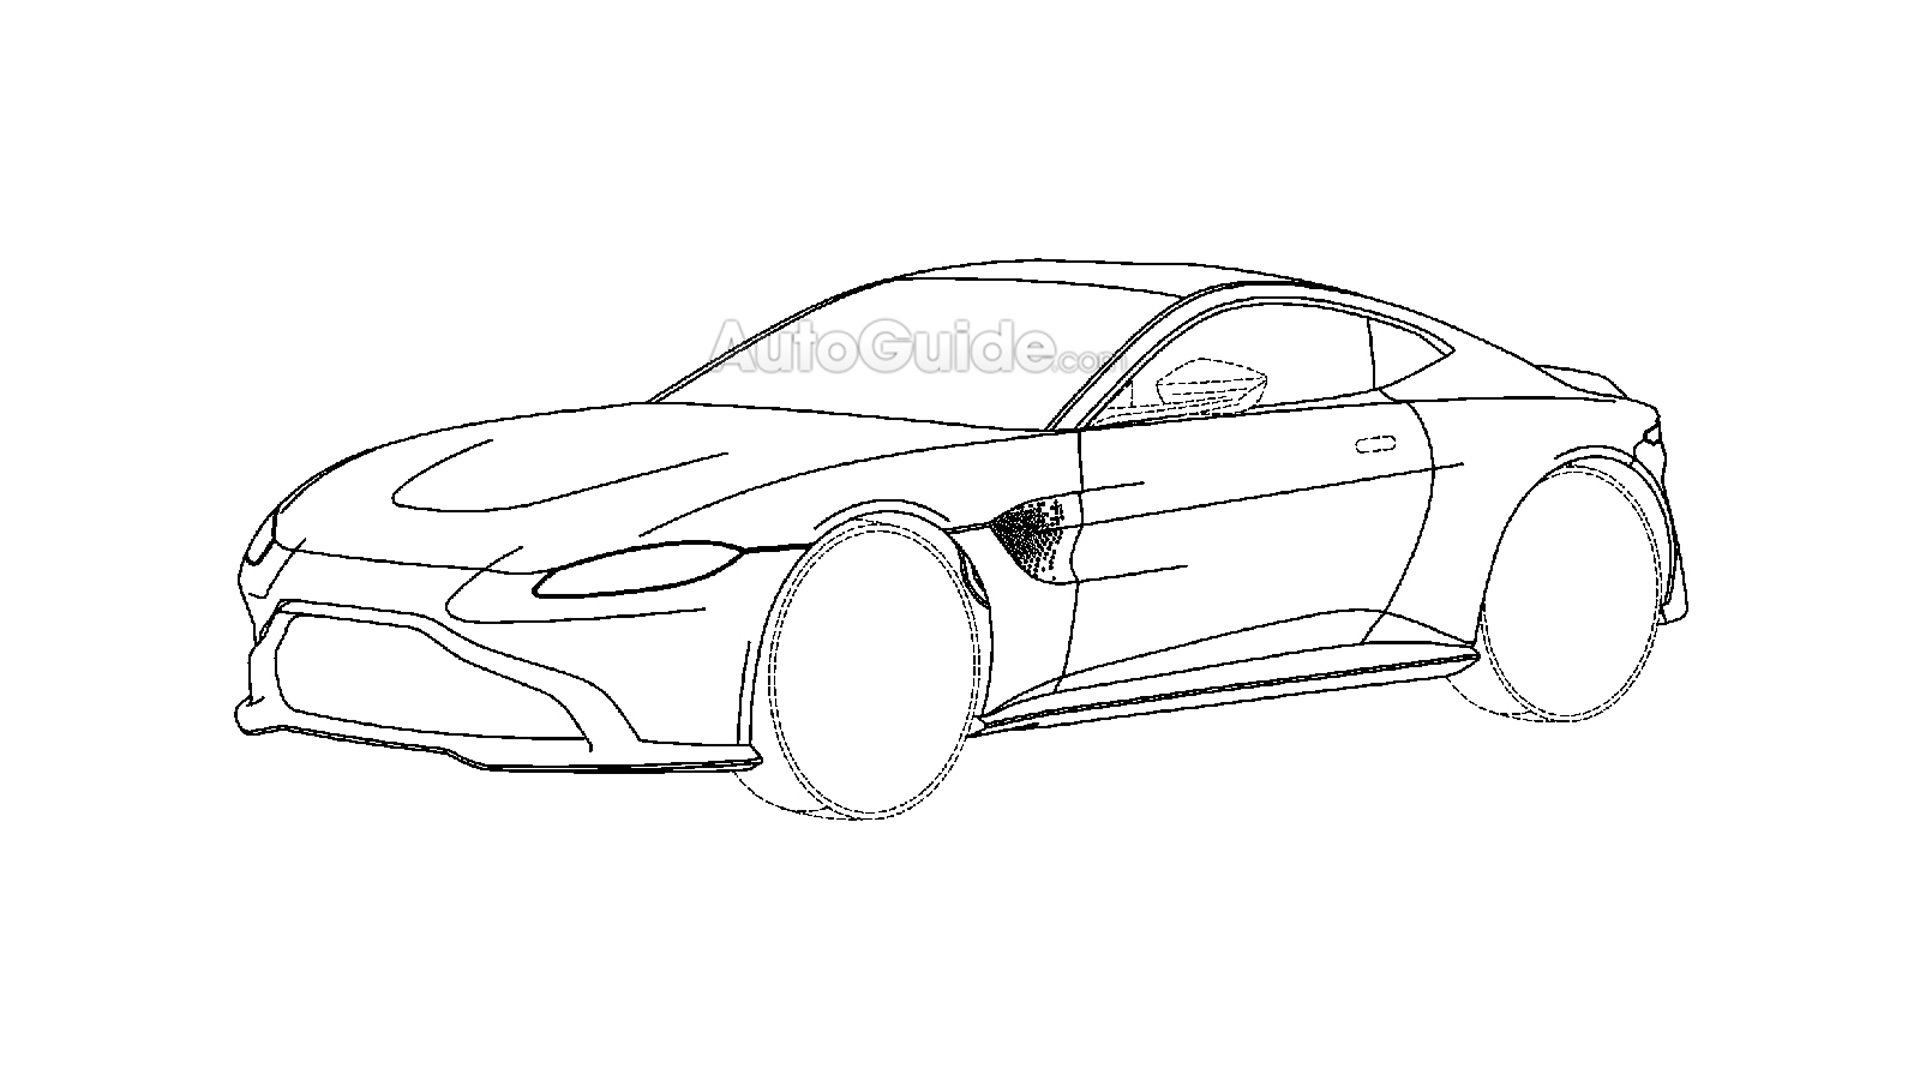 New Aston Martin Vantage Revealed In Patent Drawings